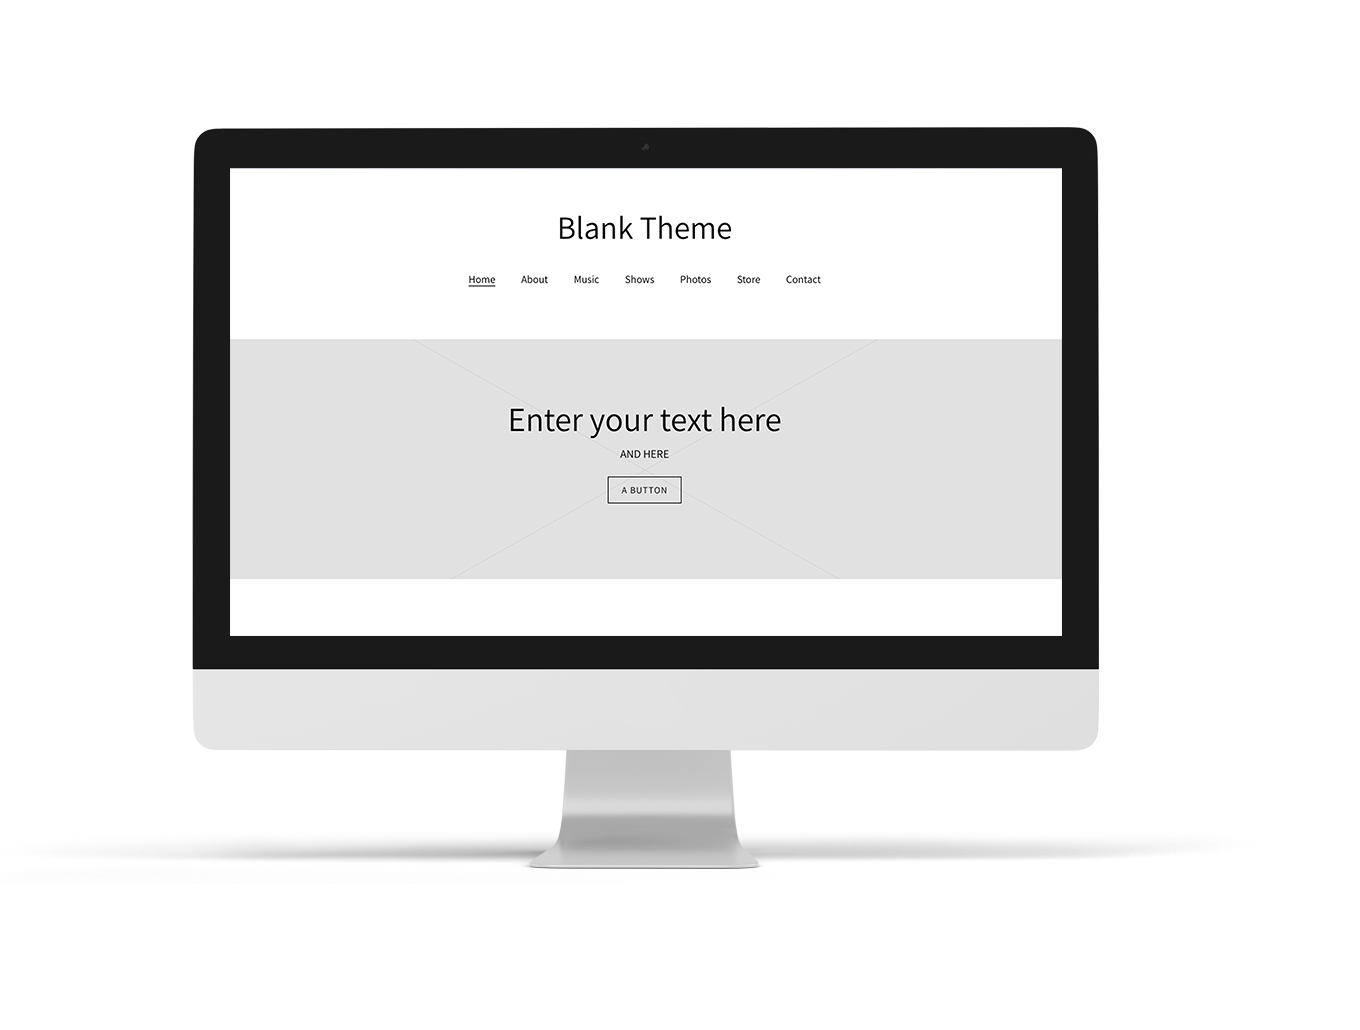 Music website example blank template